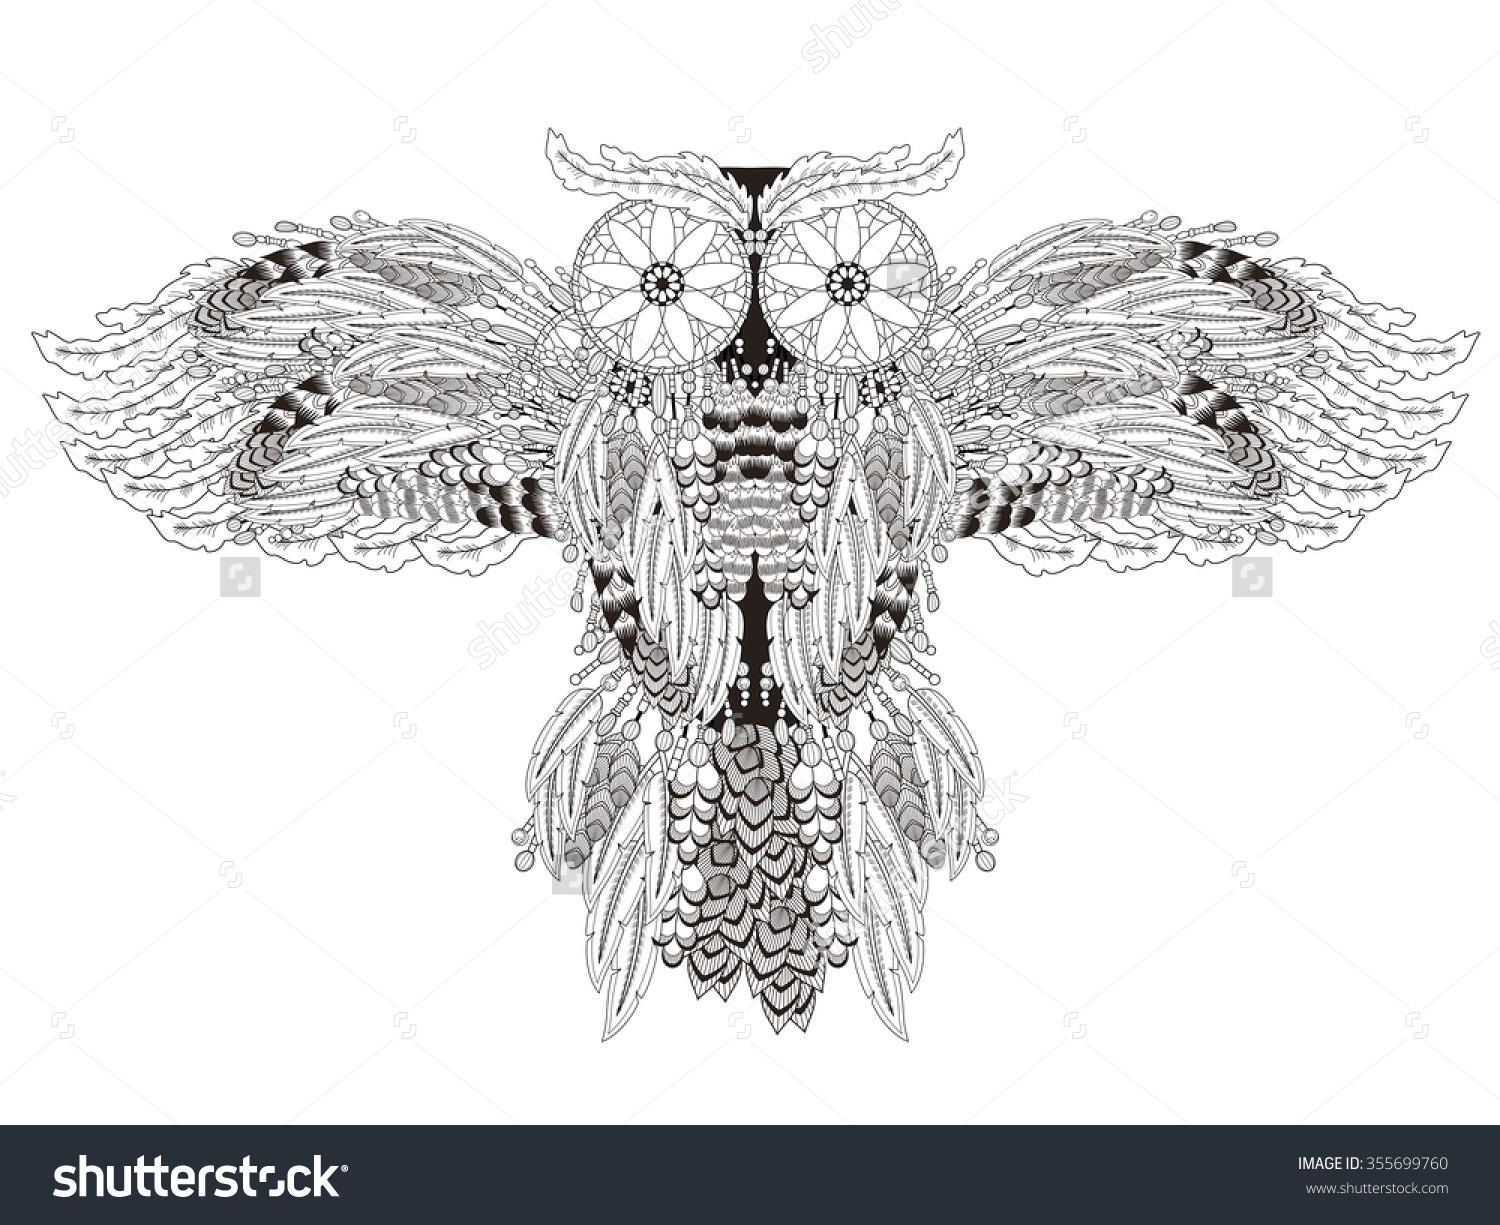 Coloring pages dream catchers - Flying Owl Coloring Page With Dream Catchers In Exquisite Line